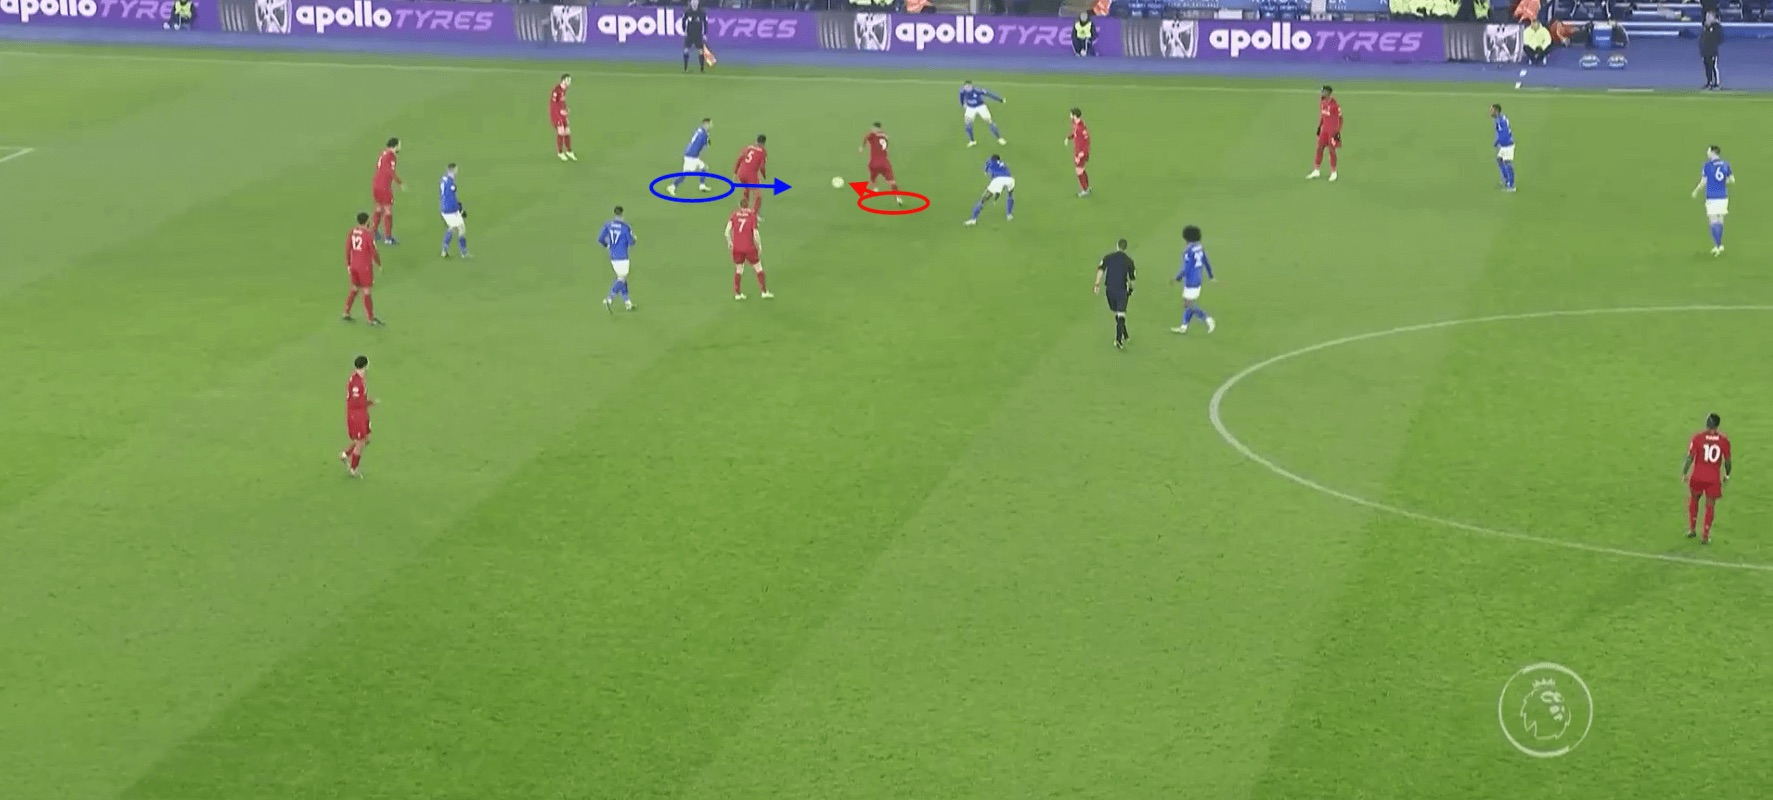 roberto-firmino-2019-20-scout-report-tactical-analysis-tactics